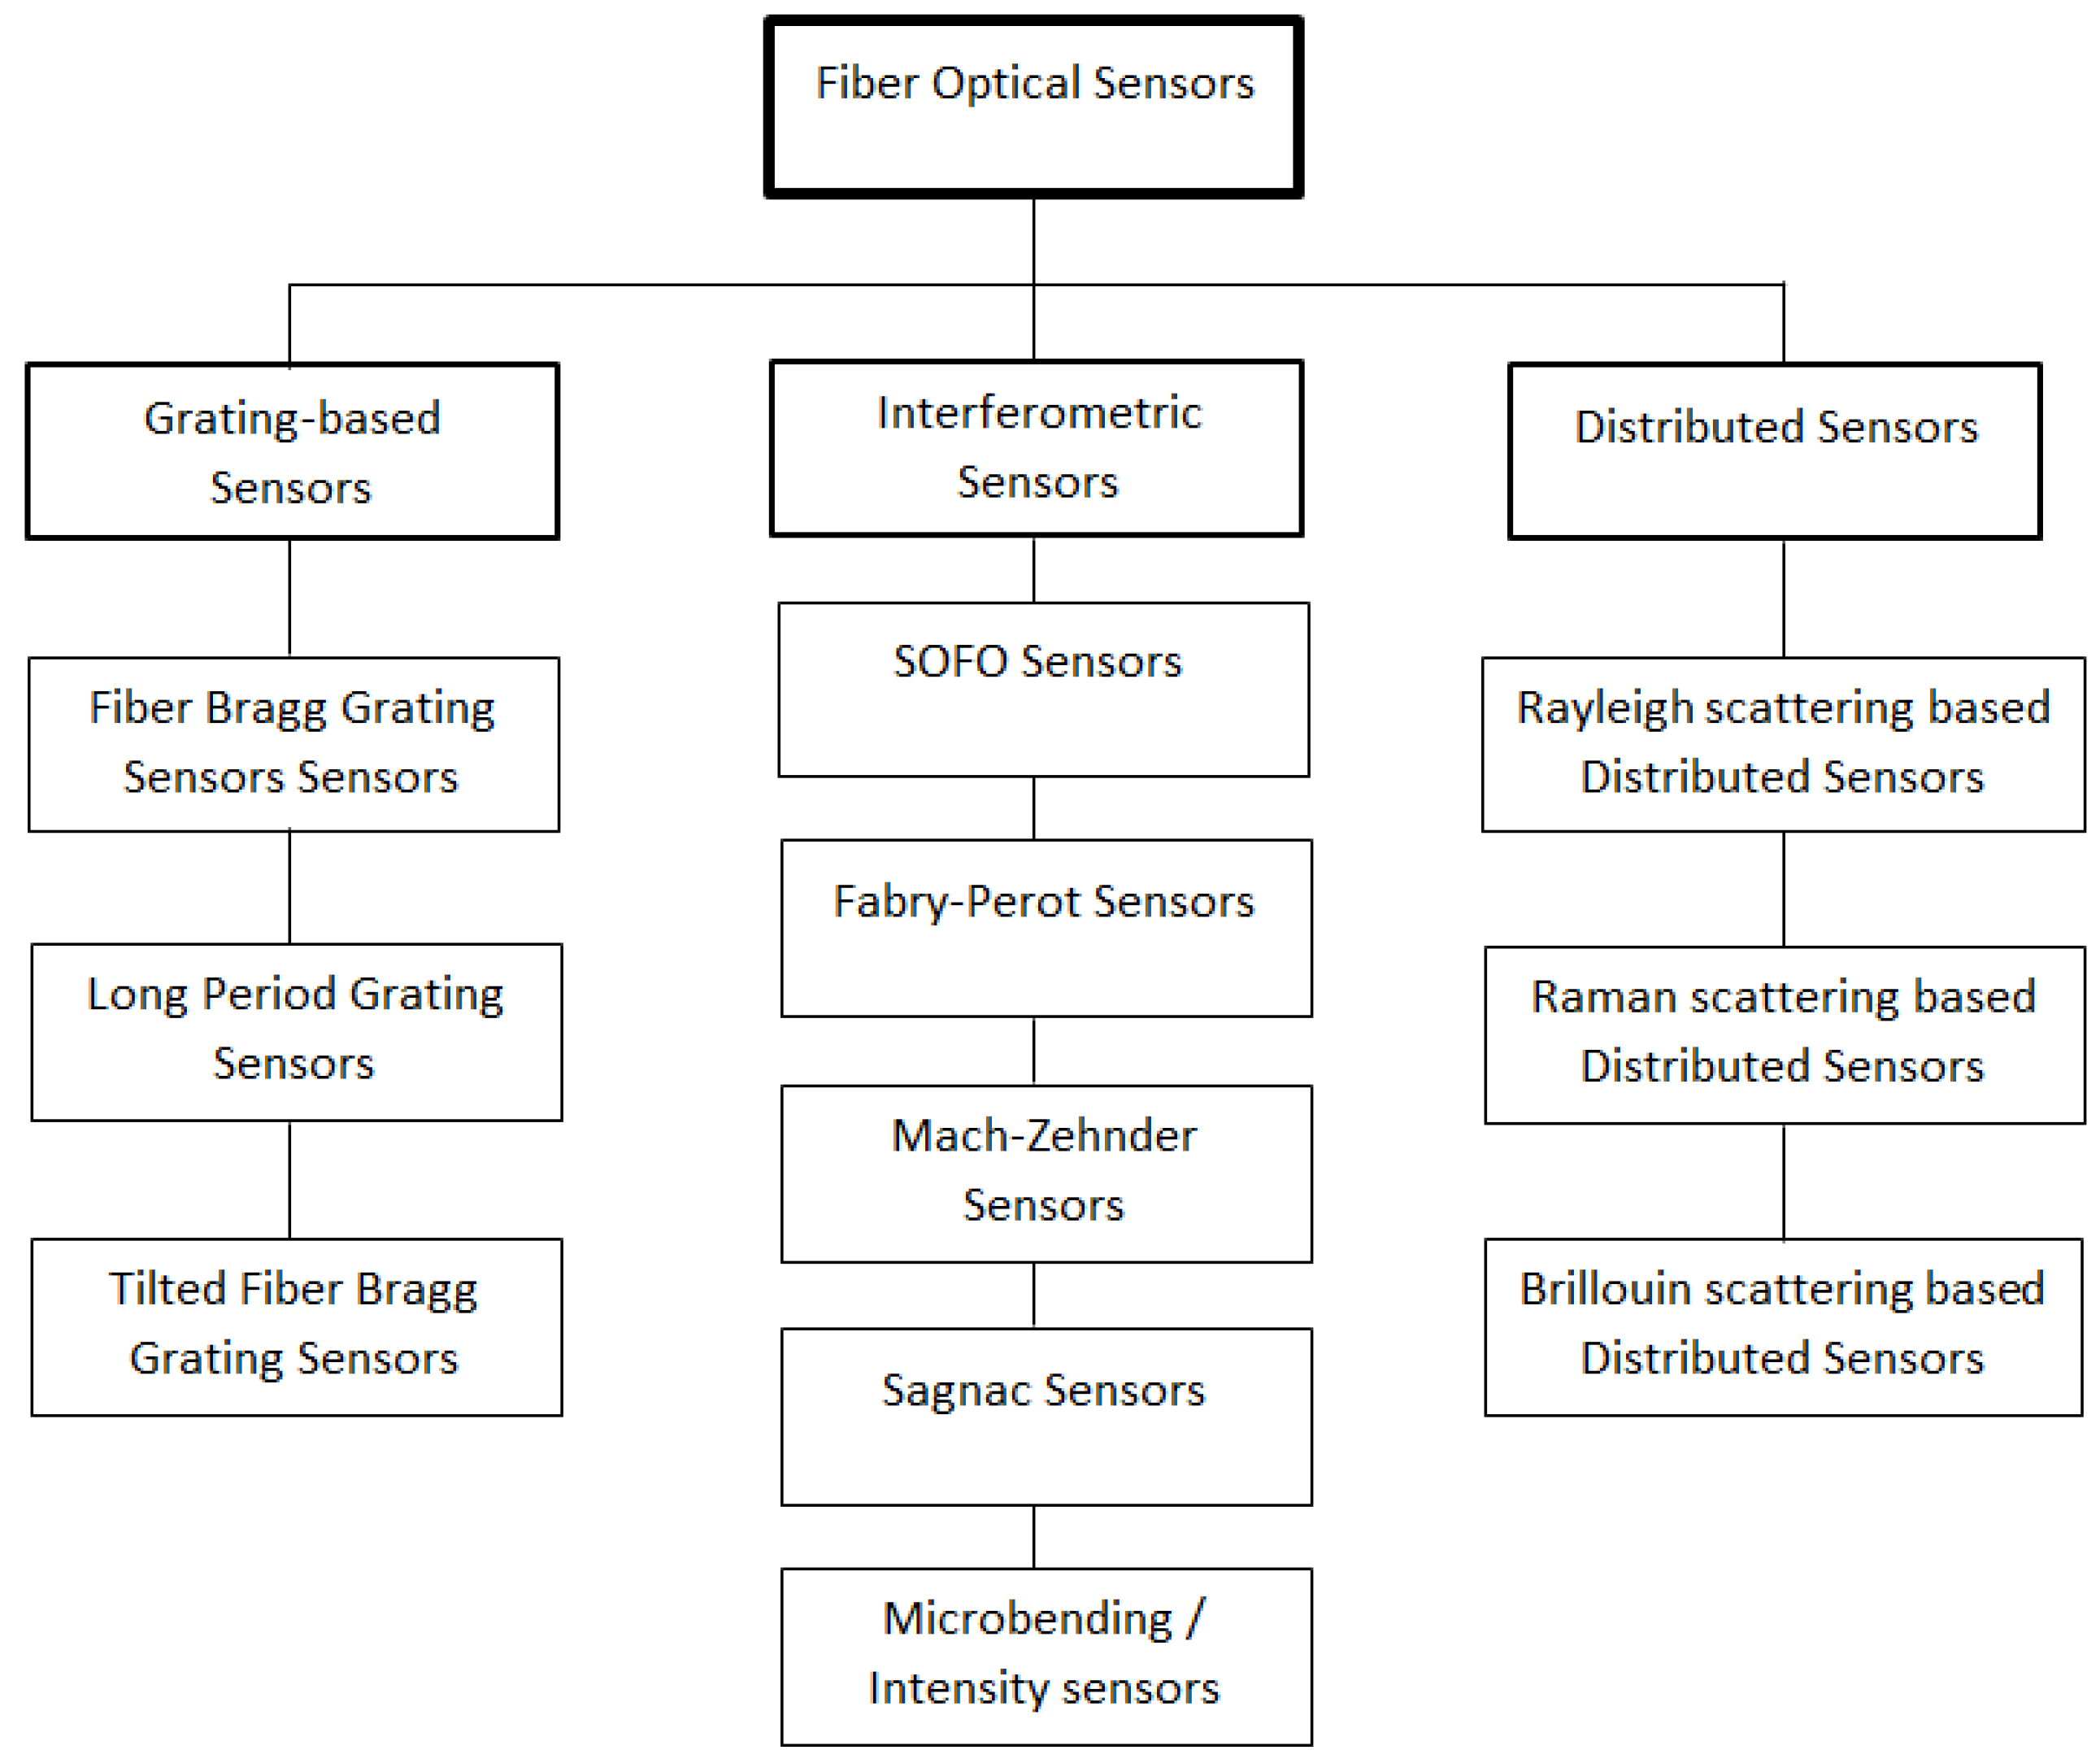 Sensors Free Full Text A Review Of Distributed Optical Fiber Optics Diagram Optic Technology And Its Role In The 16 00748 G003 1024 Figure 3 Overview Sensor Technologies